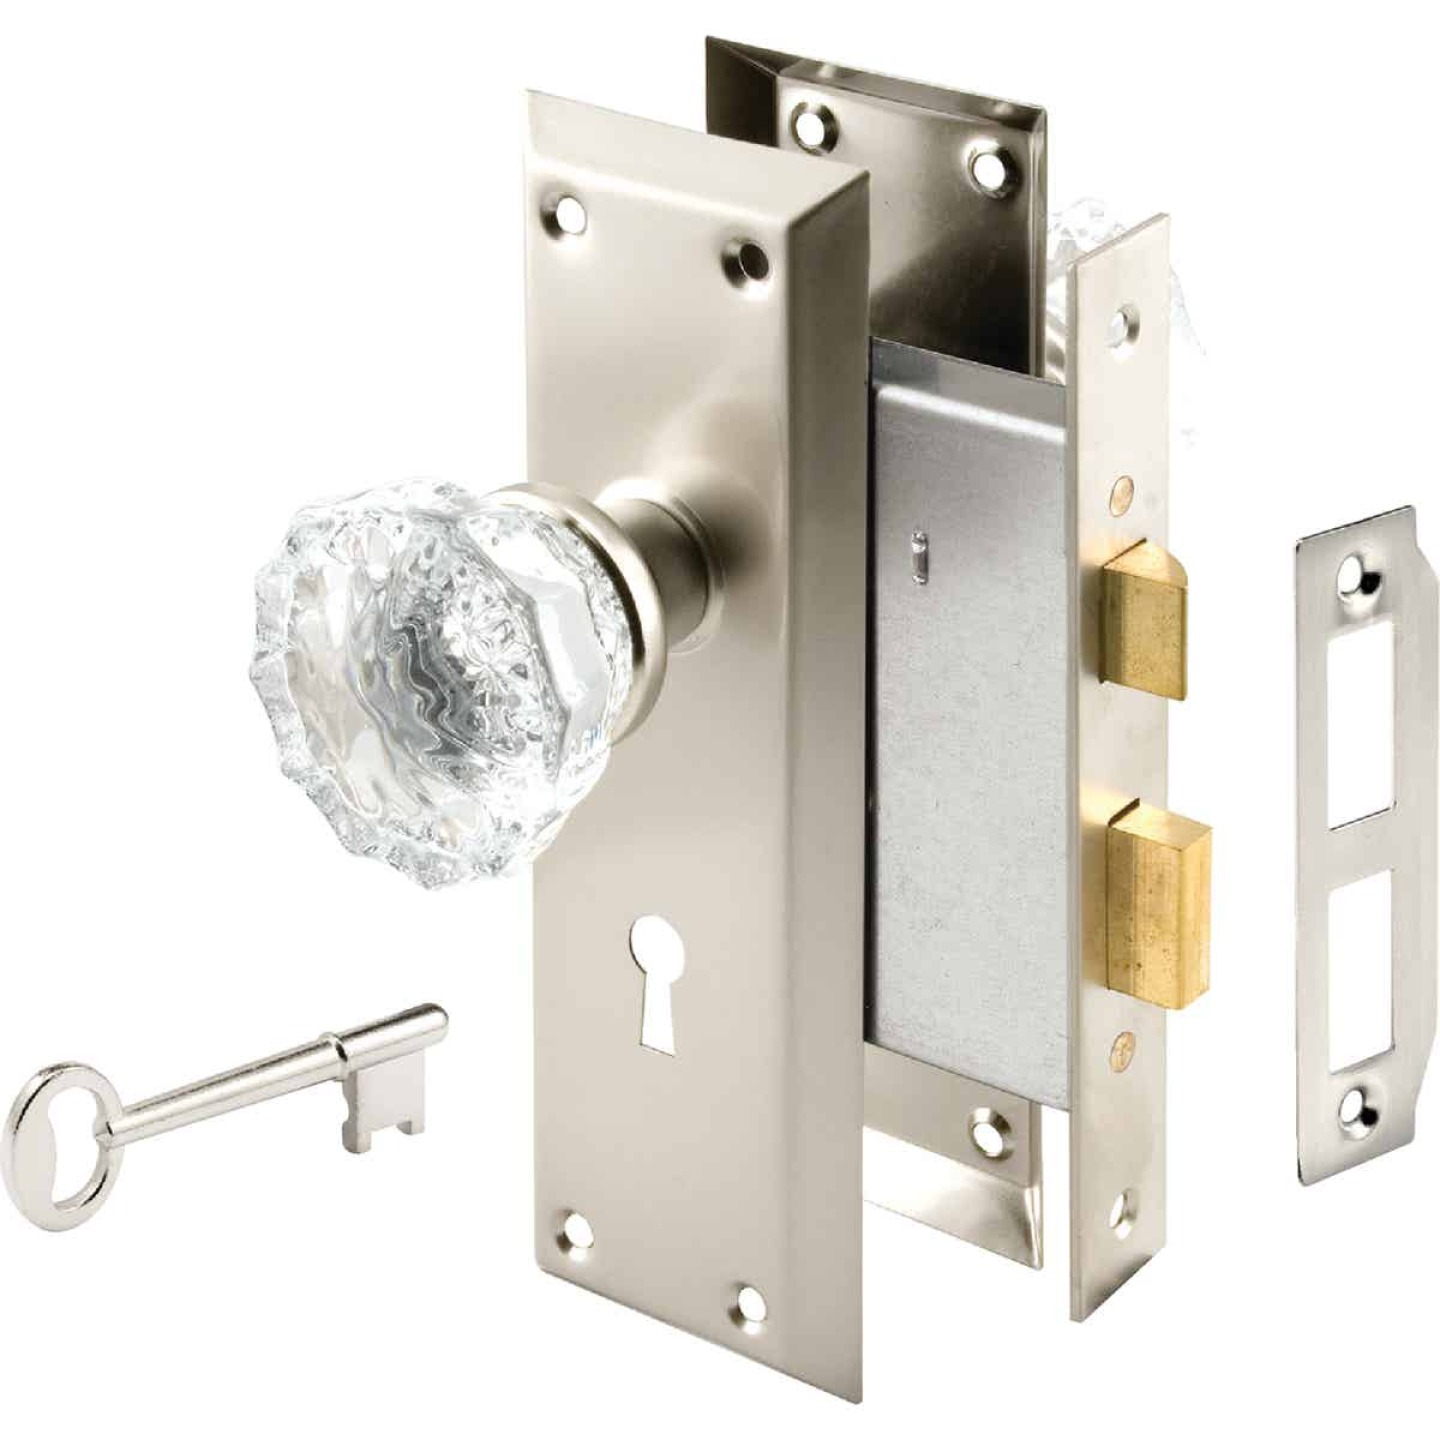 Defender Security Satin Nickel Keyed Mortise Entry Lock Set With Glass Knob Image 1